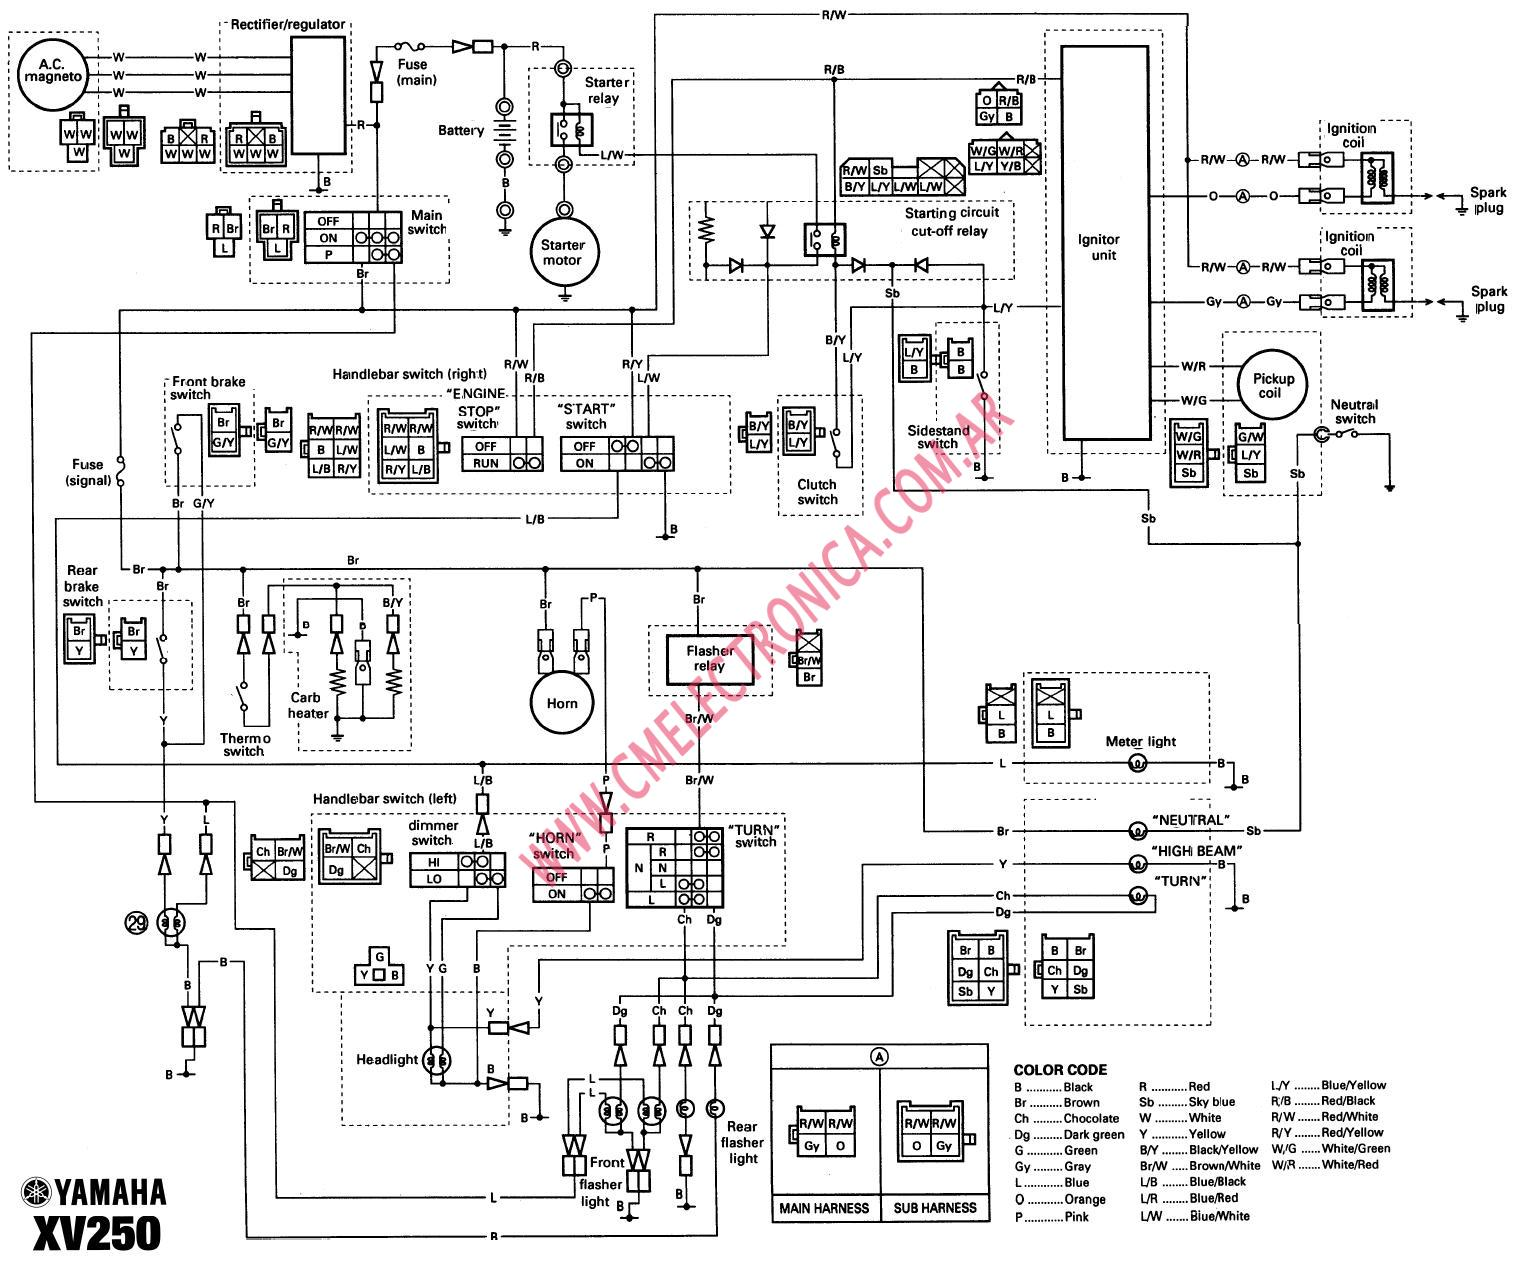 yamaha xv250 schematic yamaha outboard the wiring diagram readingrat net Yamaha Virago 1000Cc Wiring-Diagram at mifinder.co